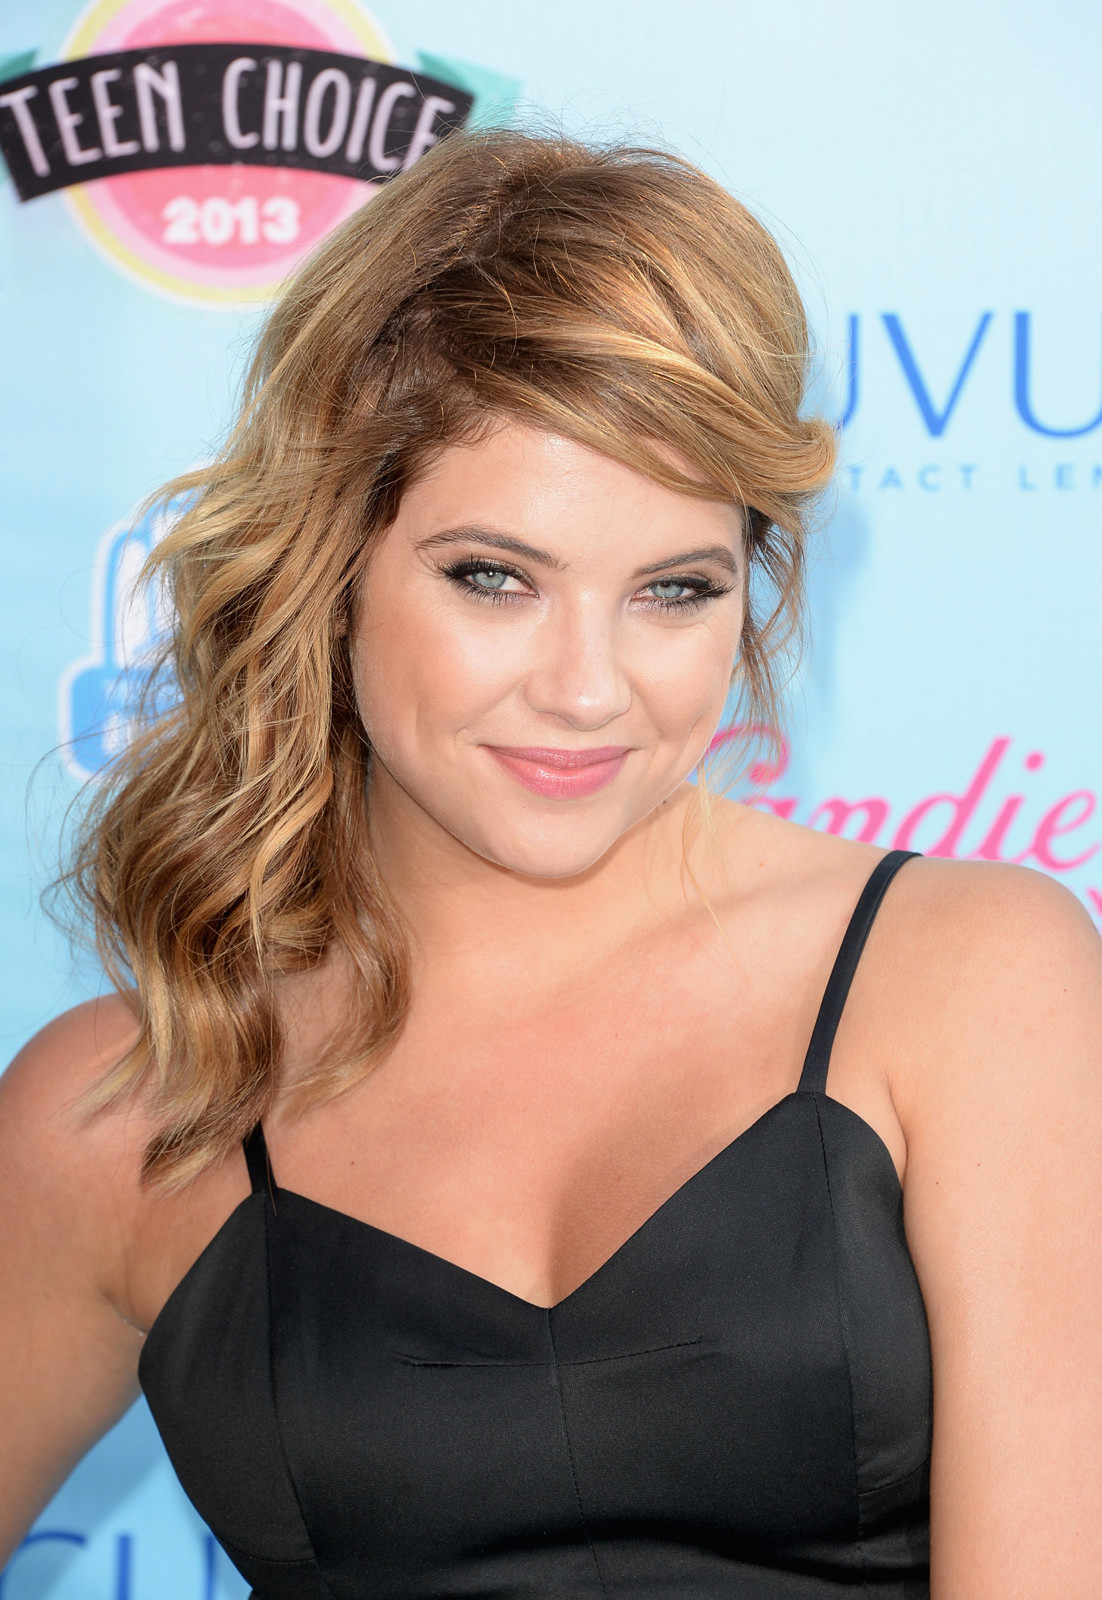 Ashley Benson Photo Gallery